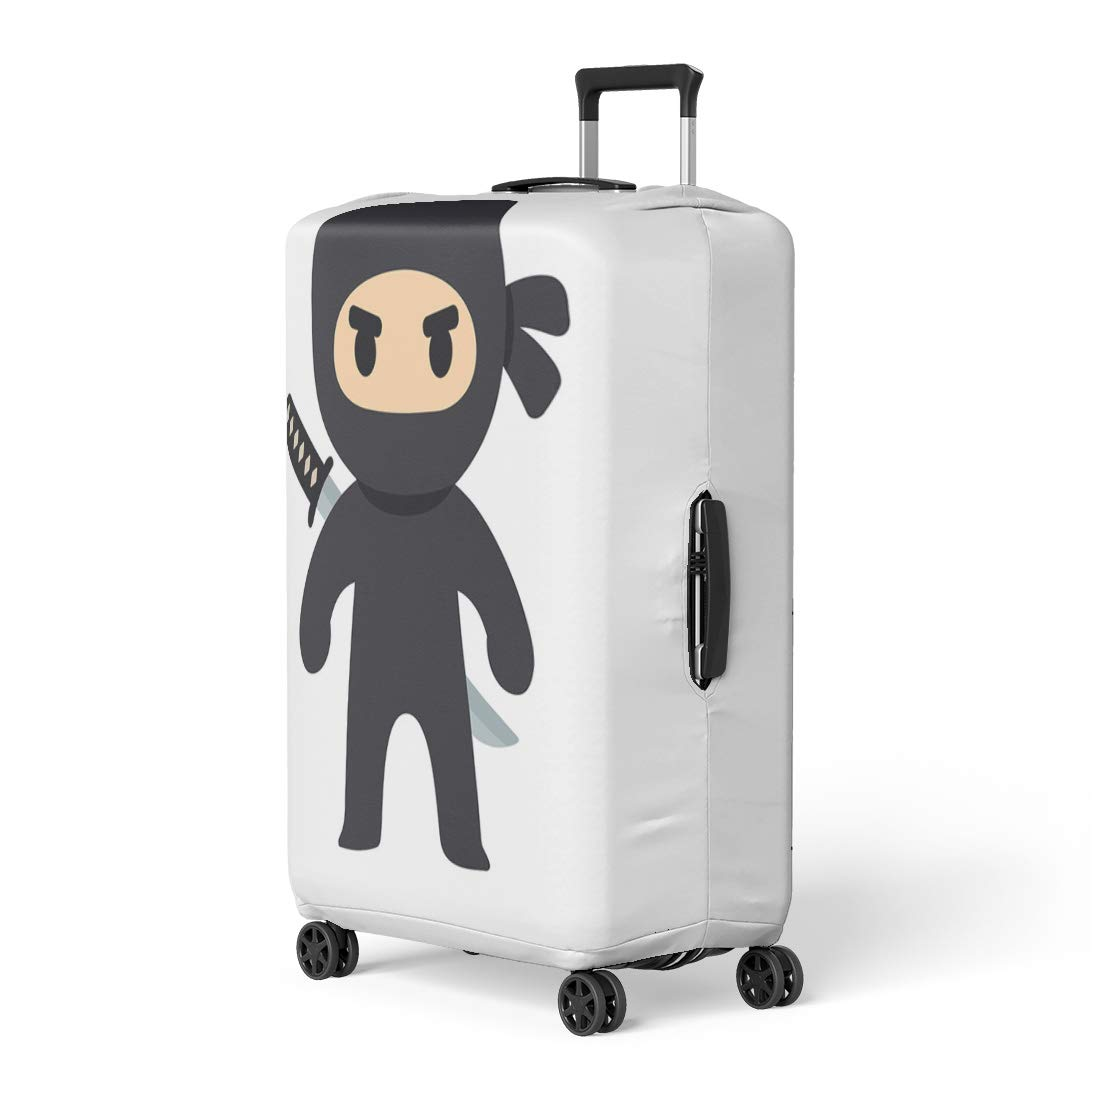 Amazon.com: Pinbeam Luggage Cover Anime Cartoon Ninja ...